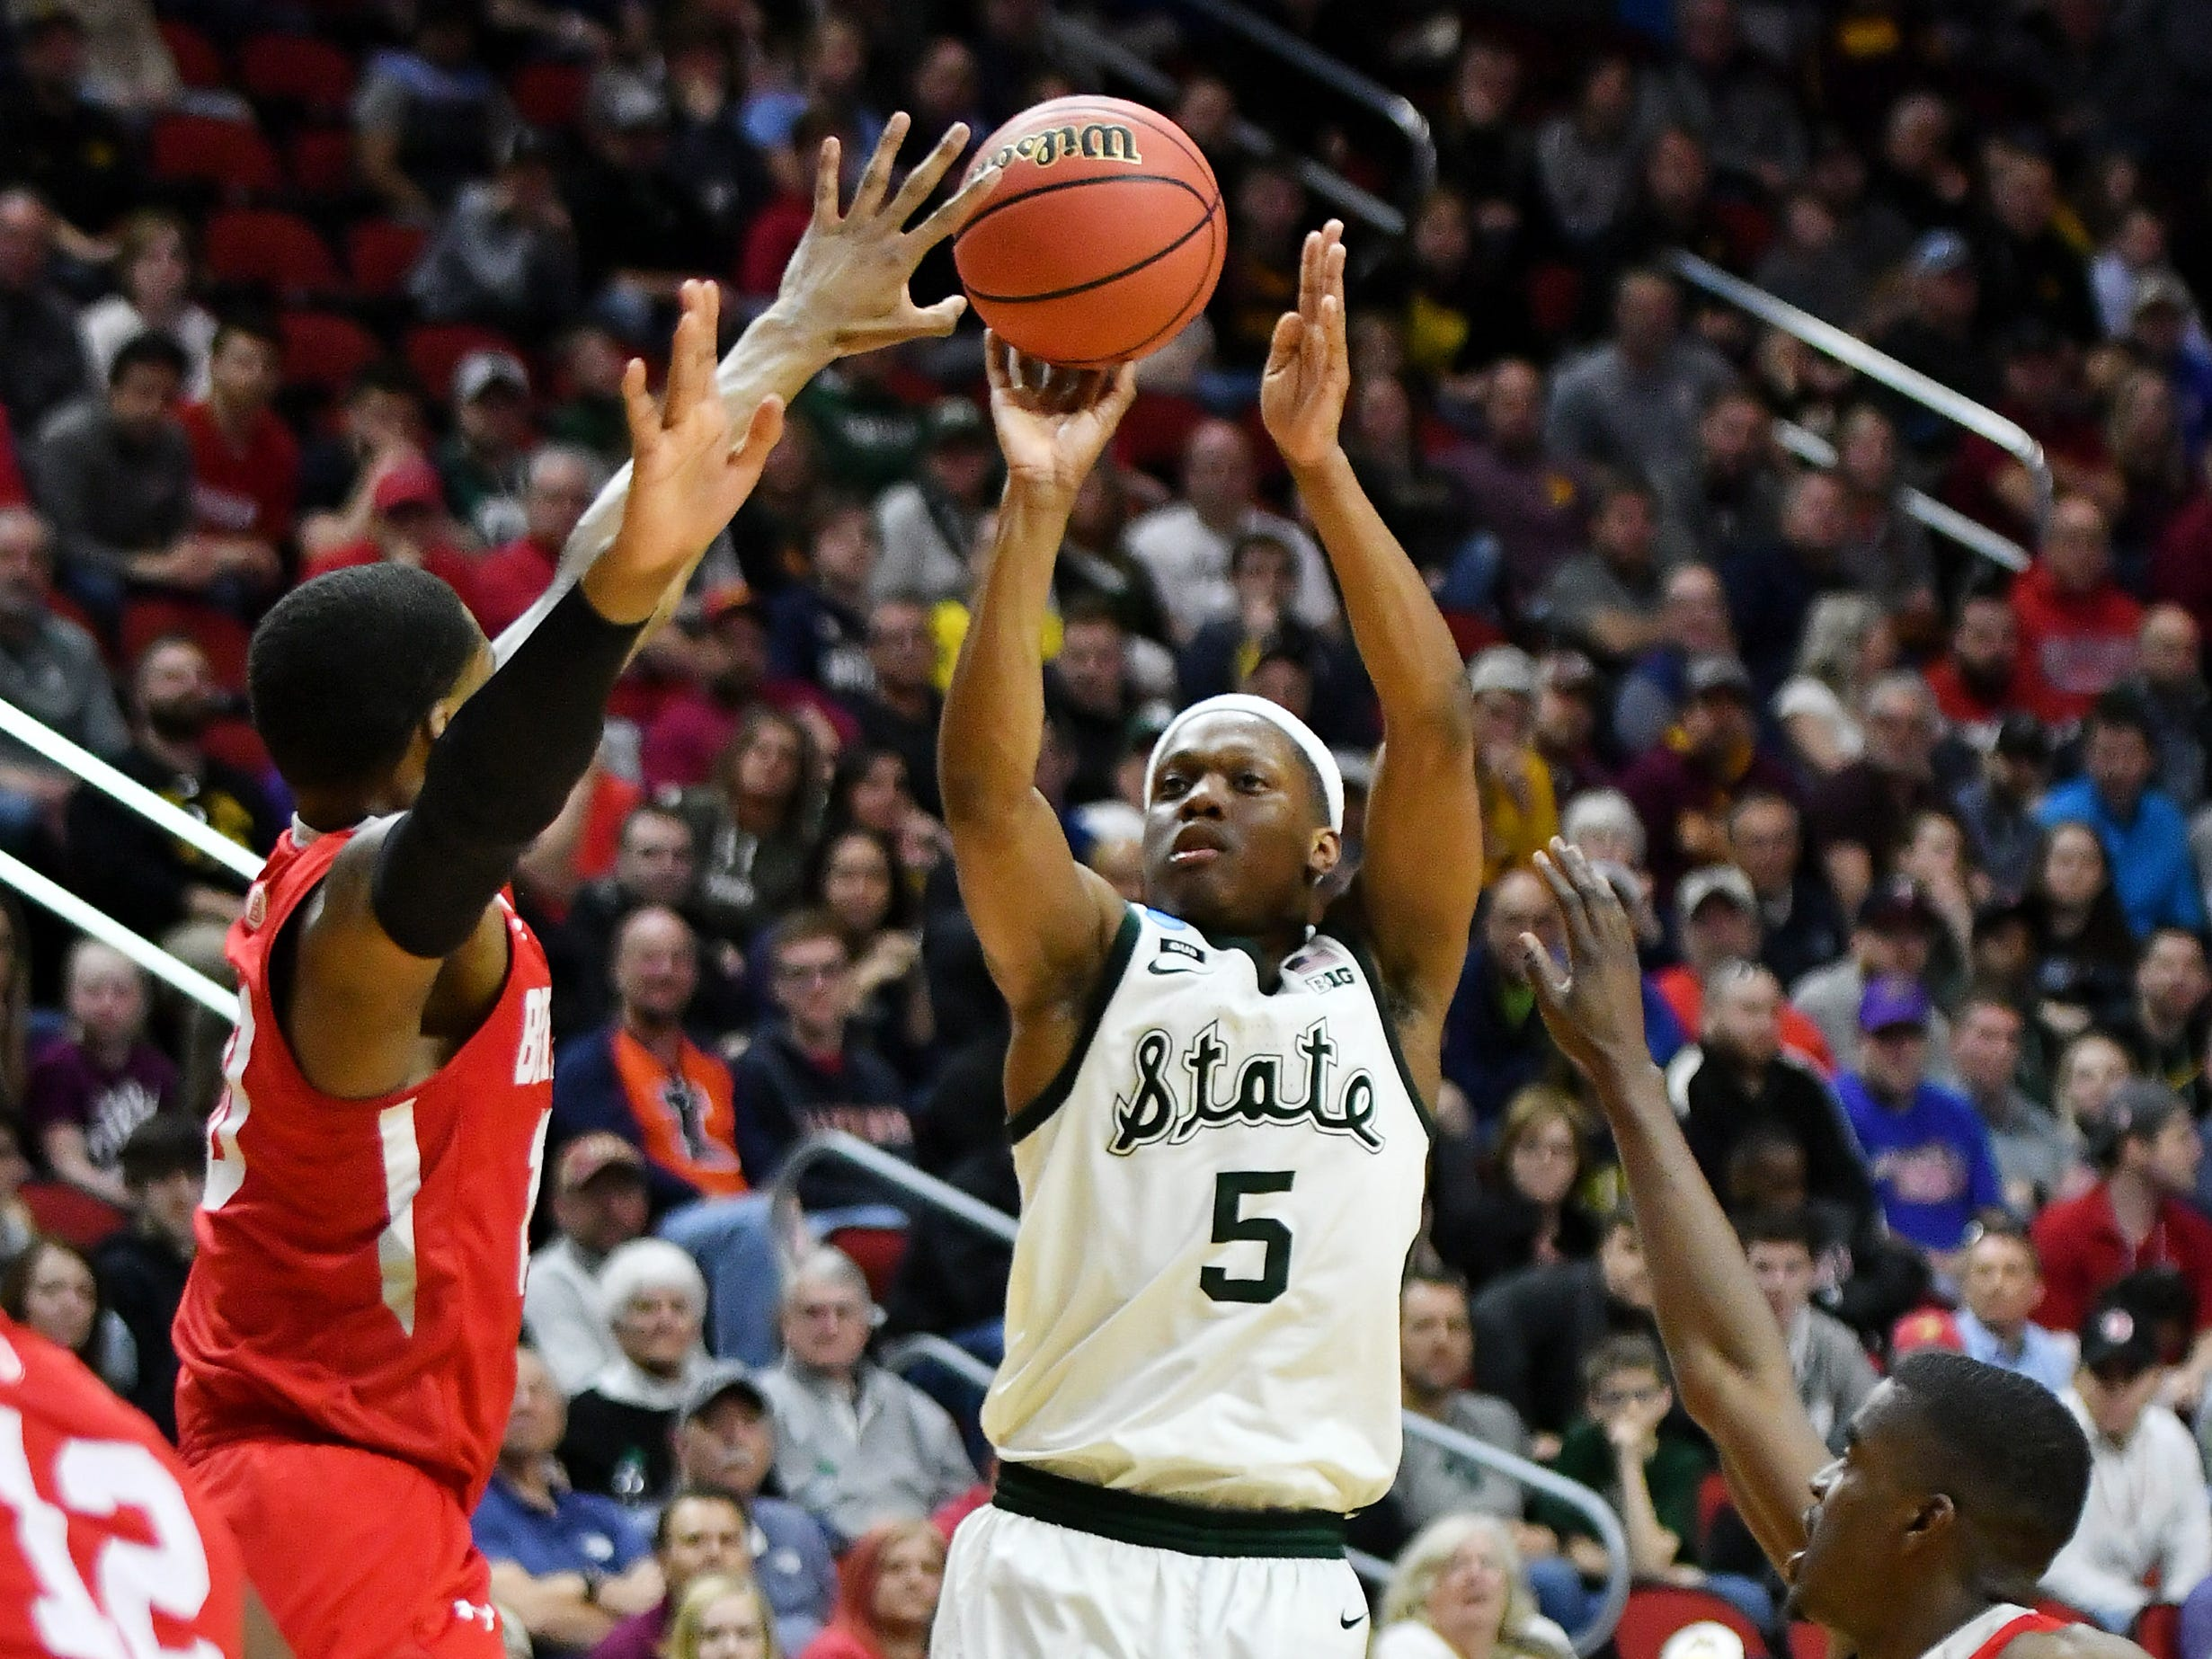 Bradley forward Elijah Childs, left, and center Koch Bar, right, defend a shot by Michigan State guard Cassius Winston (5) in the second half.